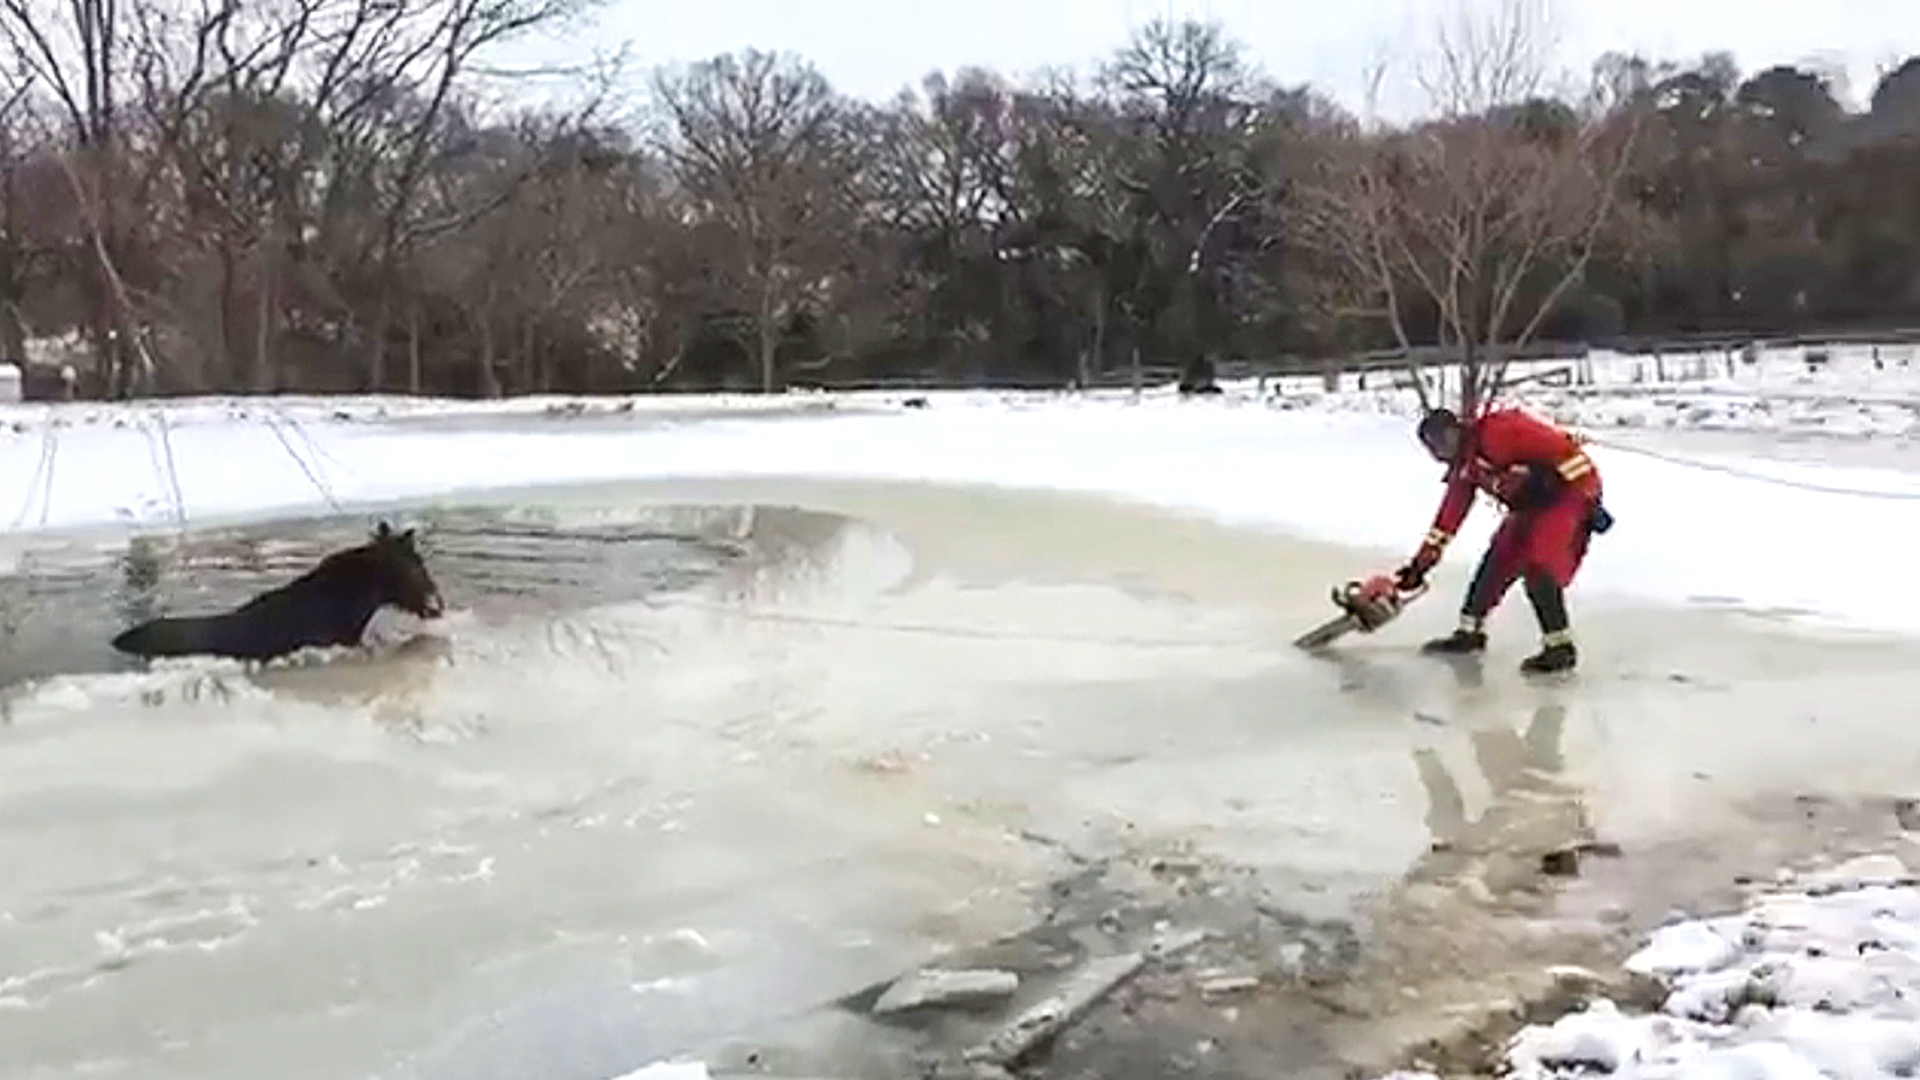 VIDEO: Texas Chainsaw Rescuer: Firefighter Saves Horse From Frozen Pond